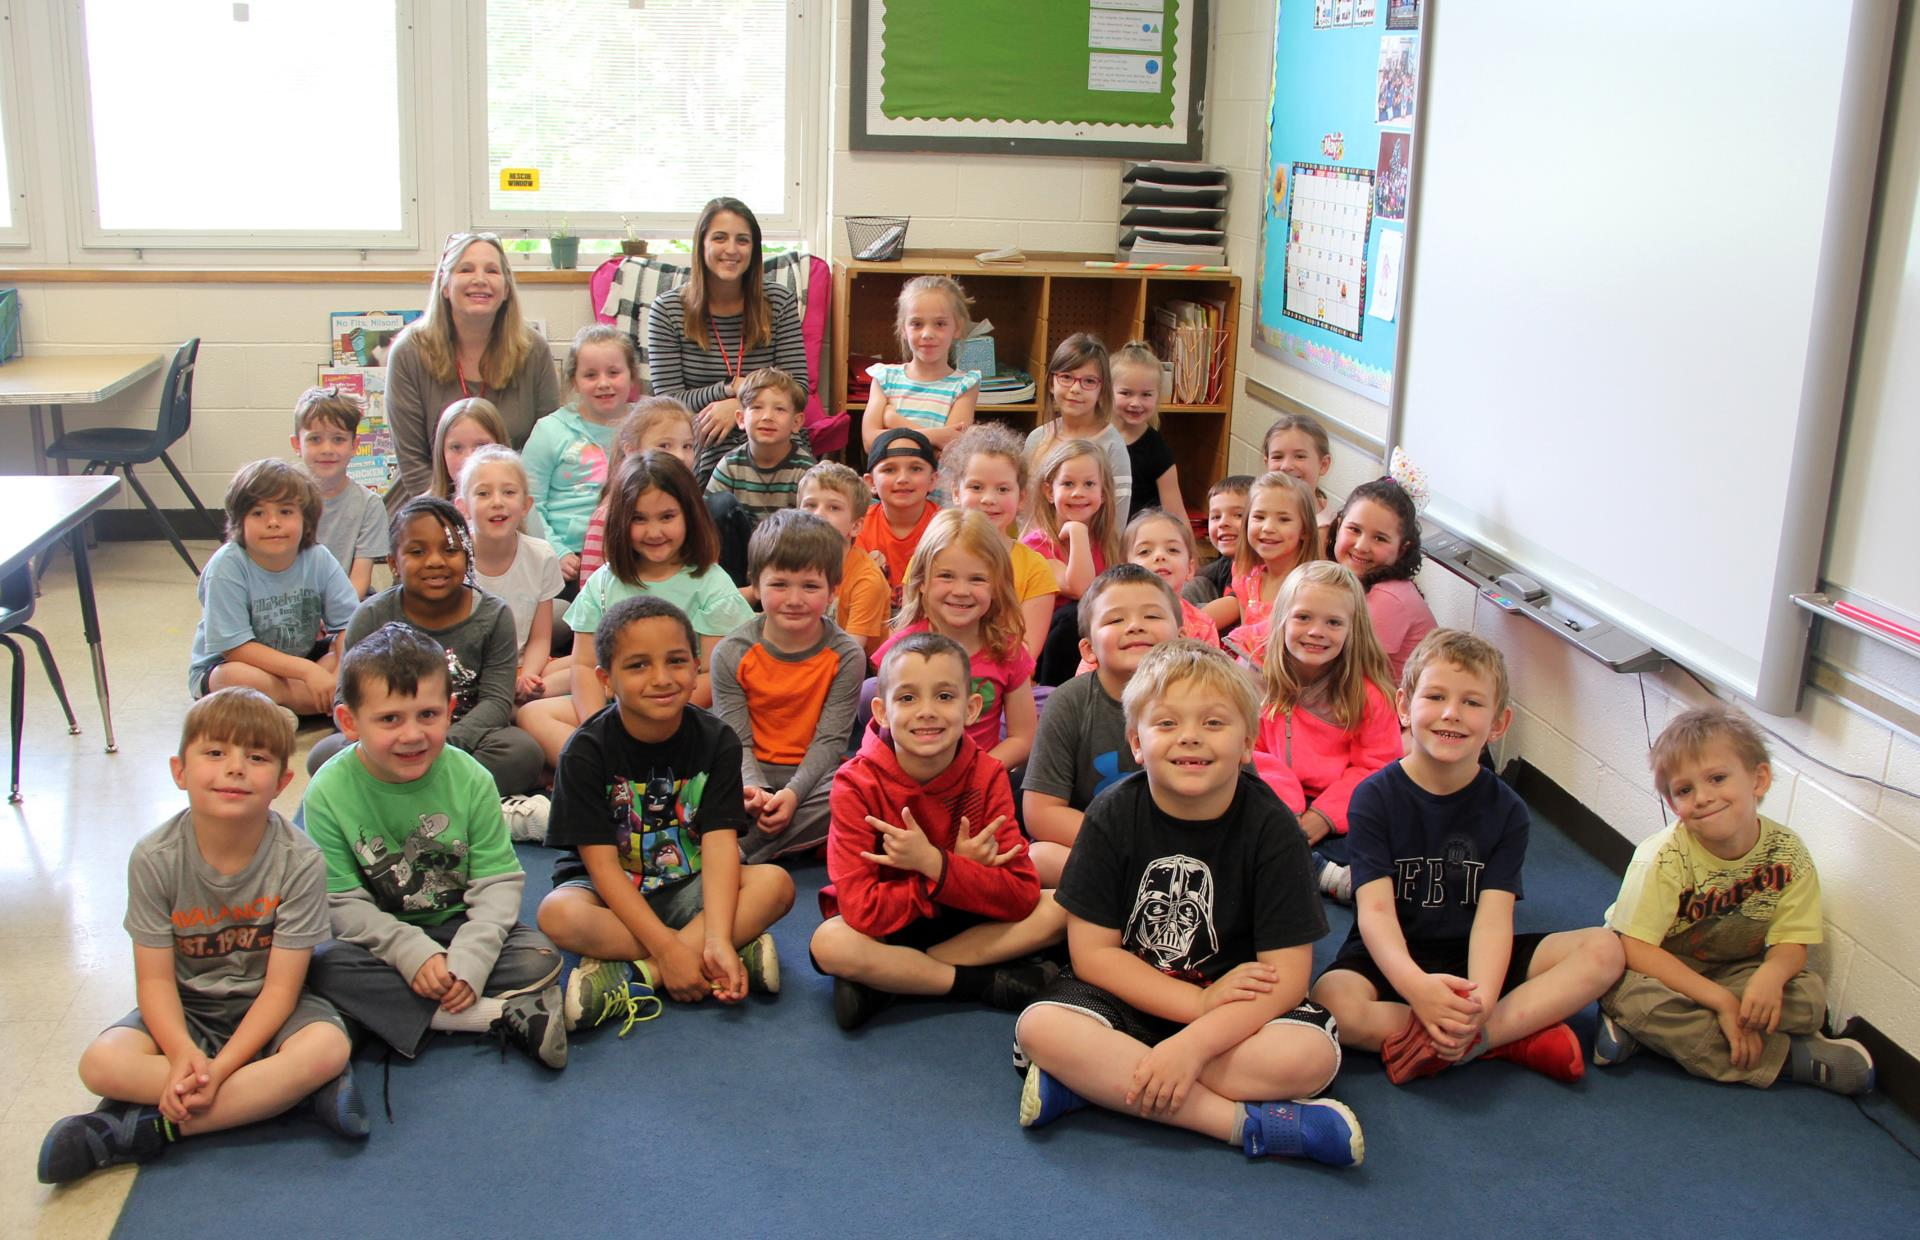 both classes sitting together smiling